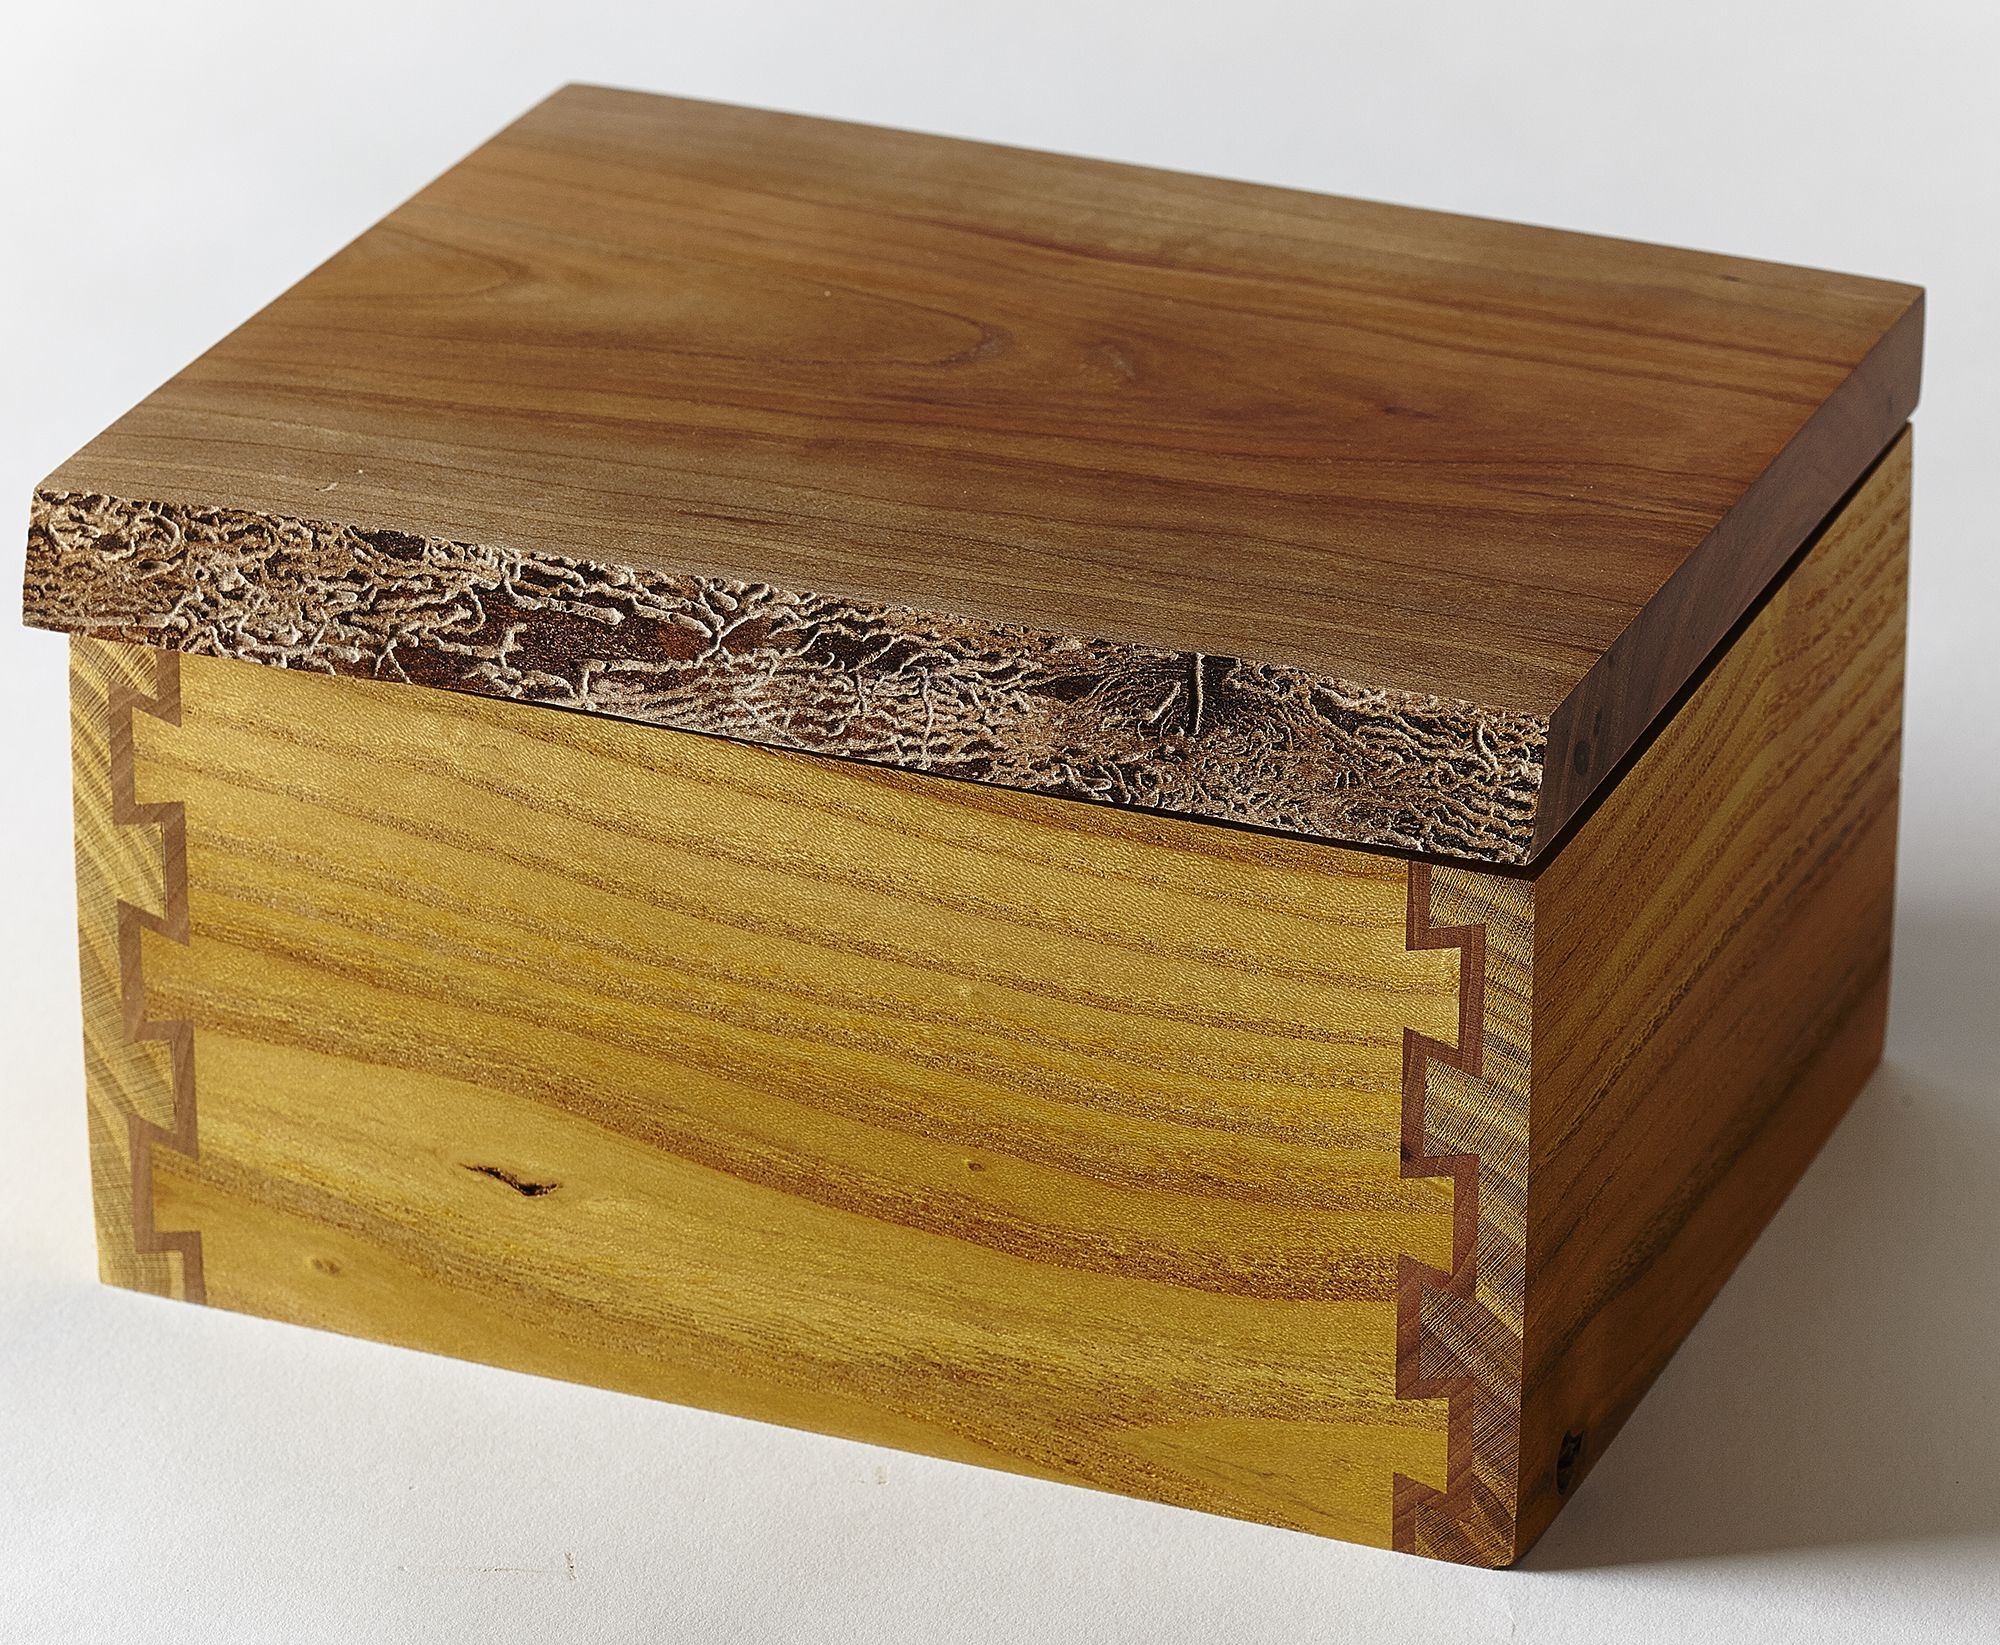 Mulberry And Cherry Box With Double Dovetail Joints And